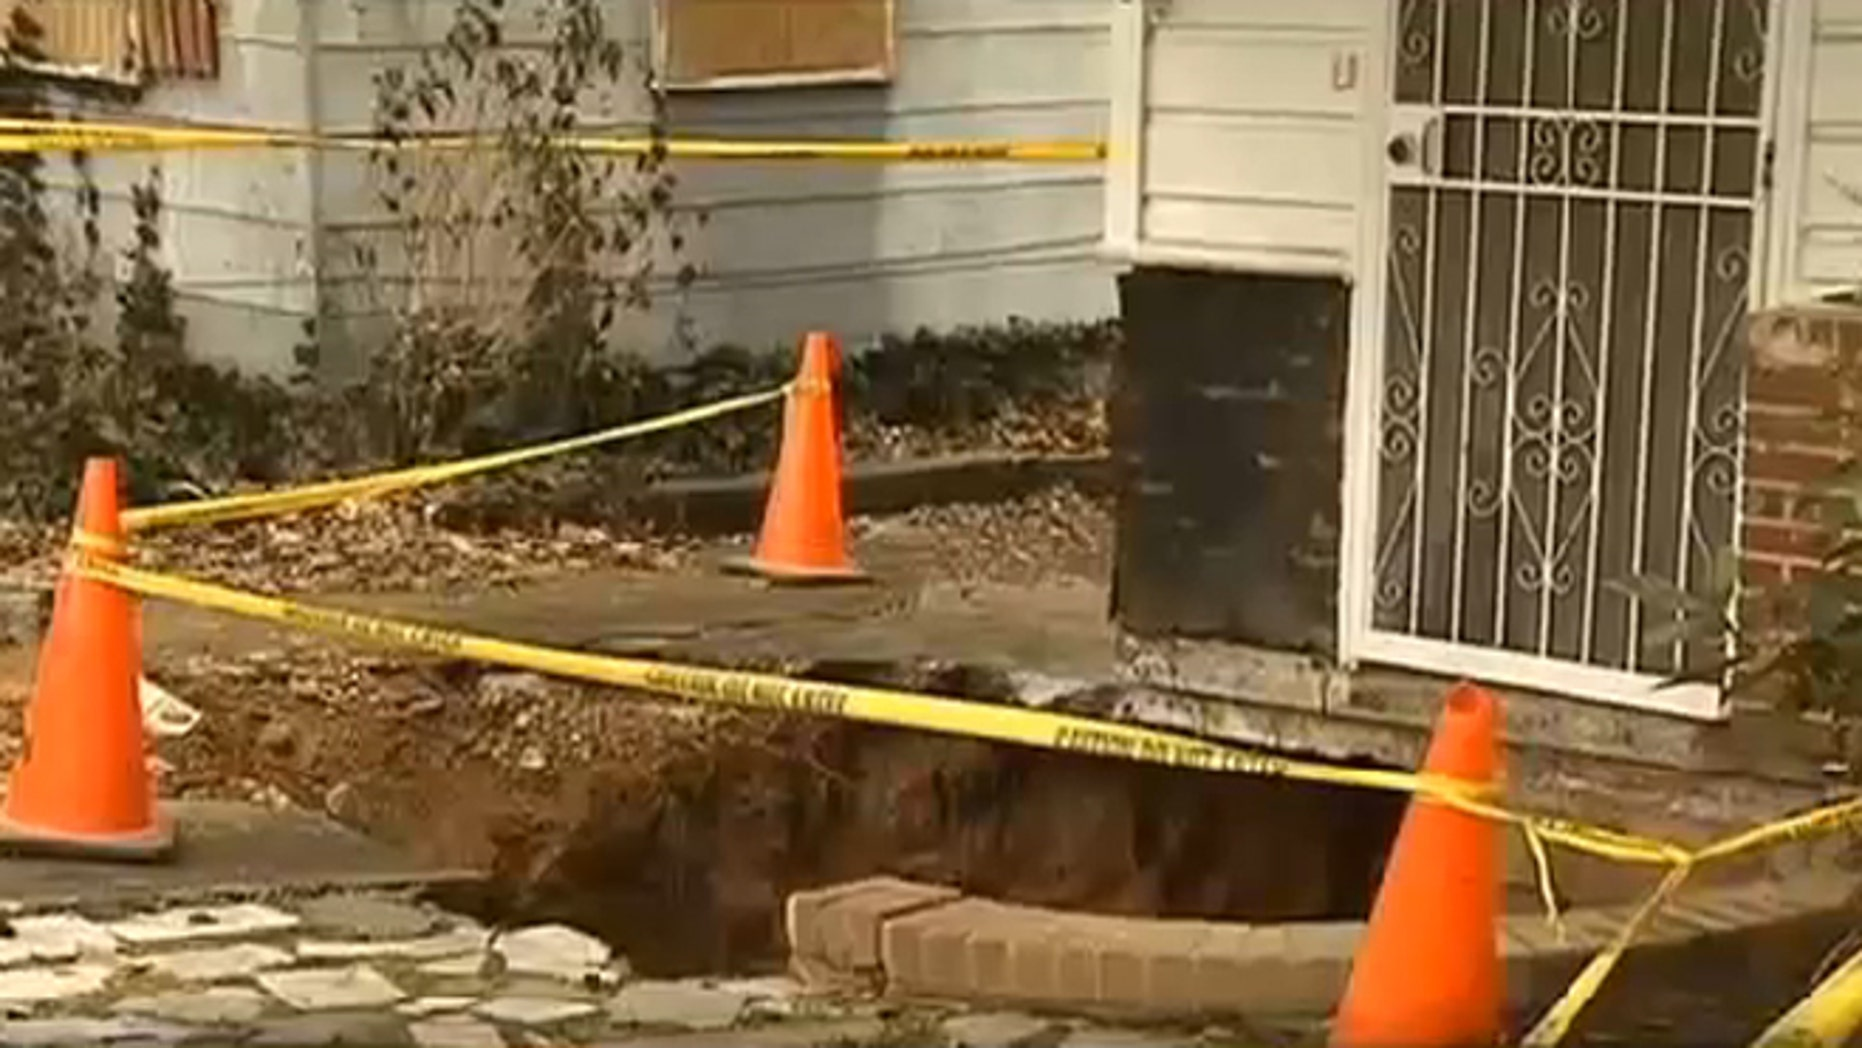 Feb. 5, 2014: A Georgia man rescued his wife after she fell into a sinkhole that opened up in front of their house.